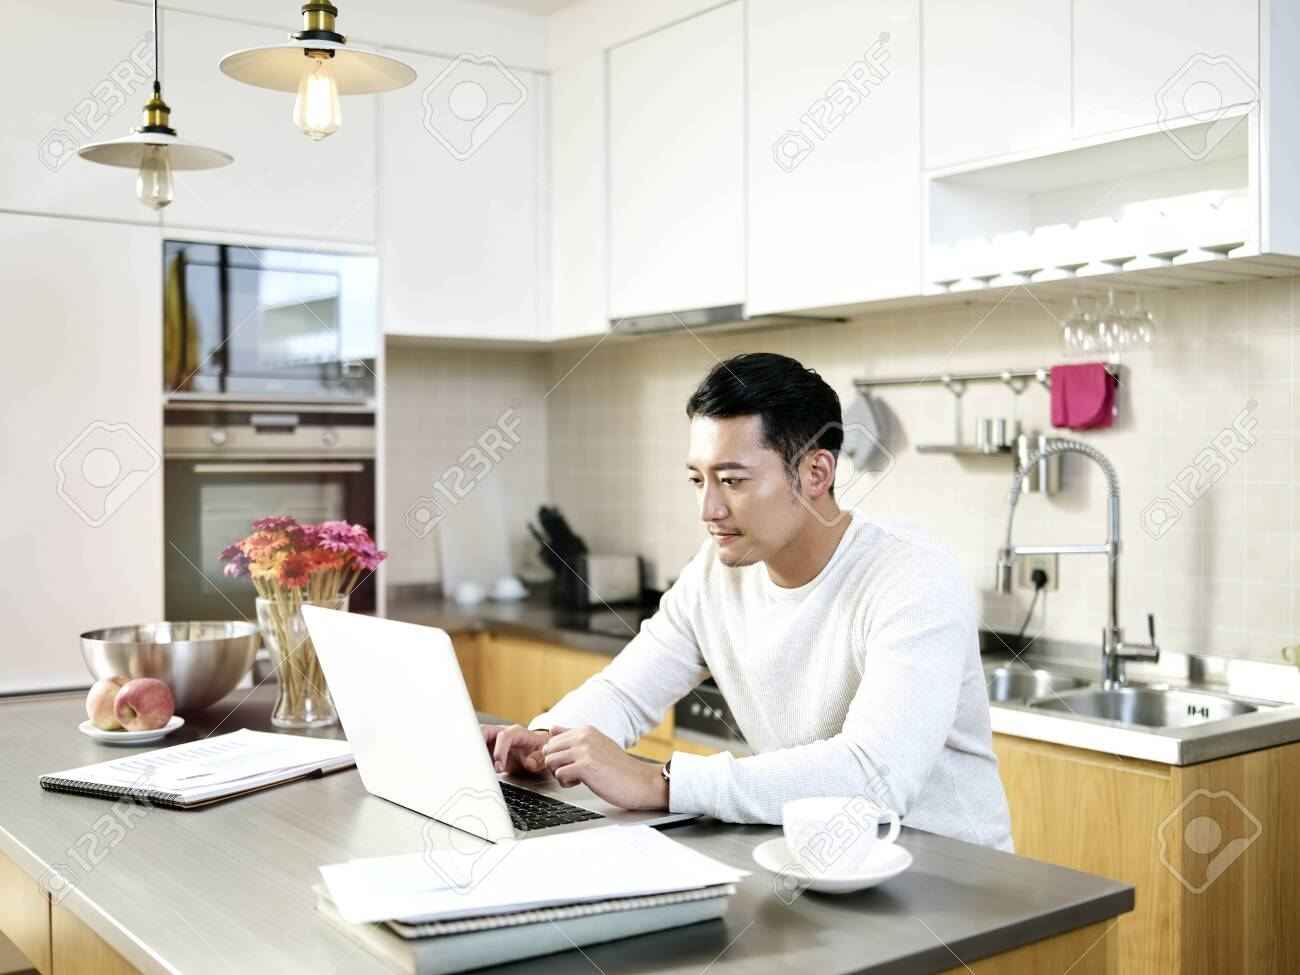 young asian man working from home sitting at kitchen counter using laptop computer - 132759870